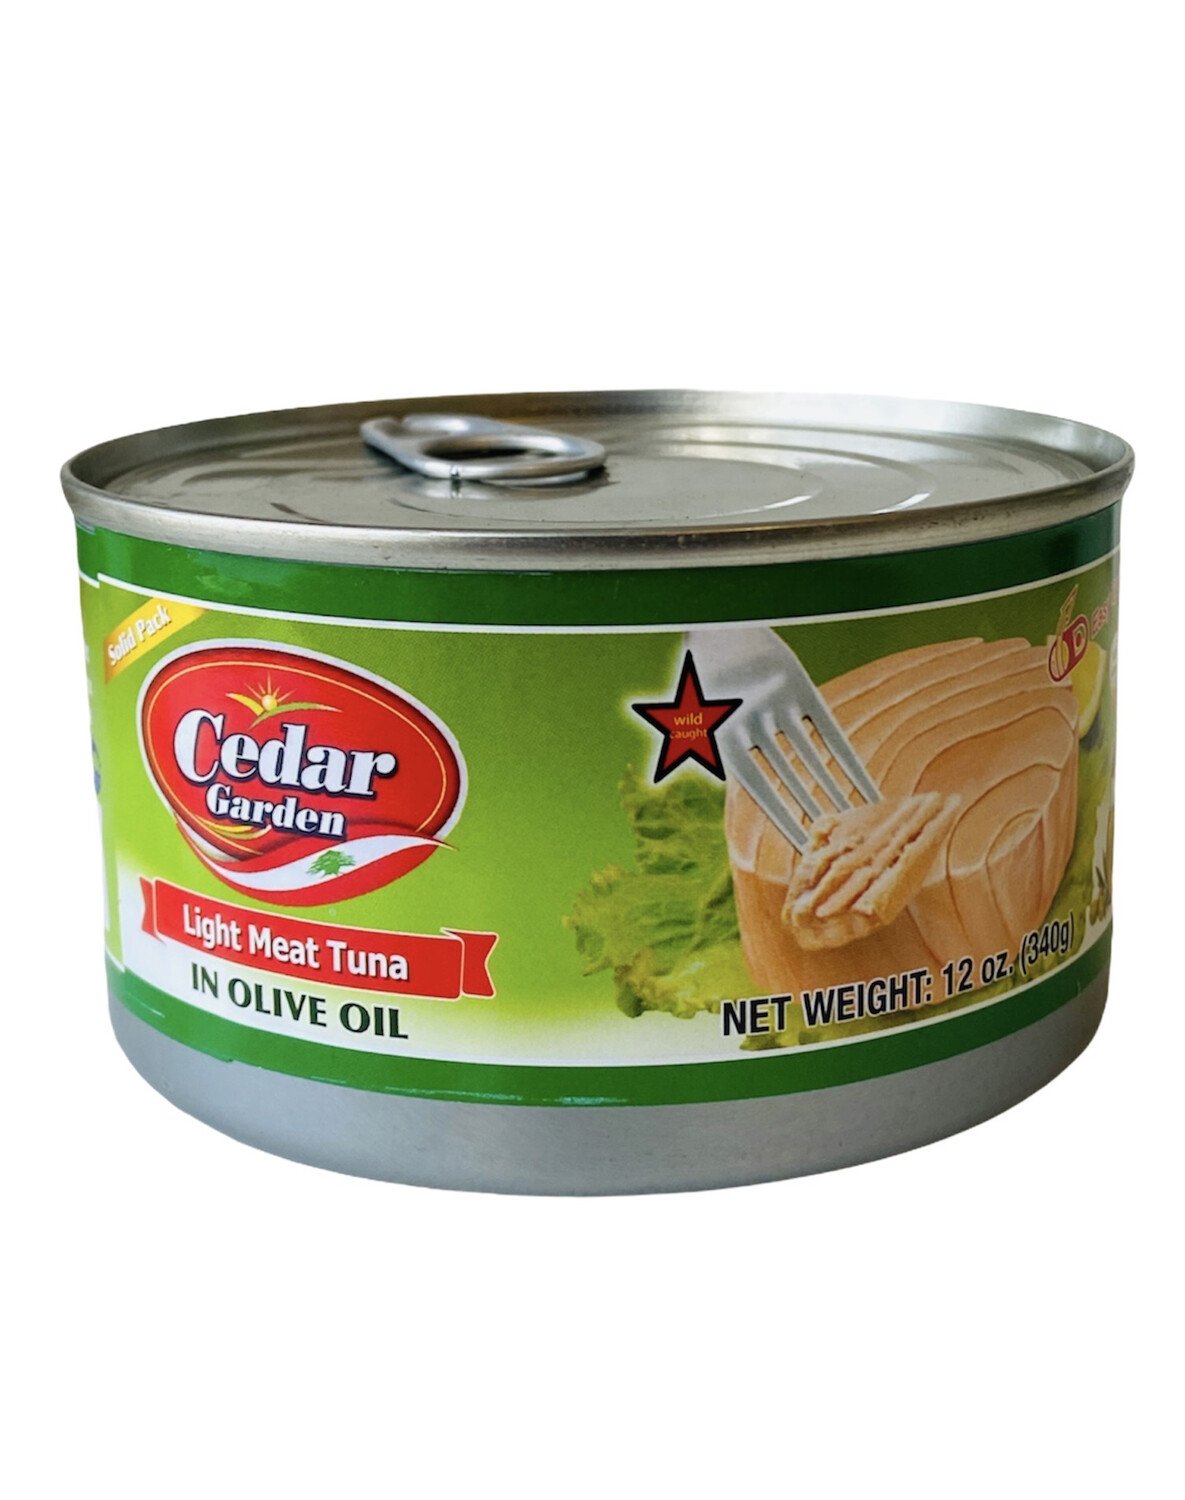 Cedar Garden Tuna With Olive Oil Family Size 24x12oz